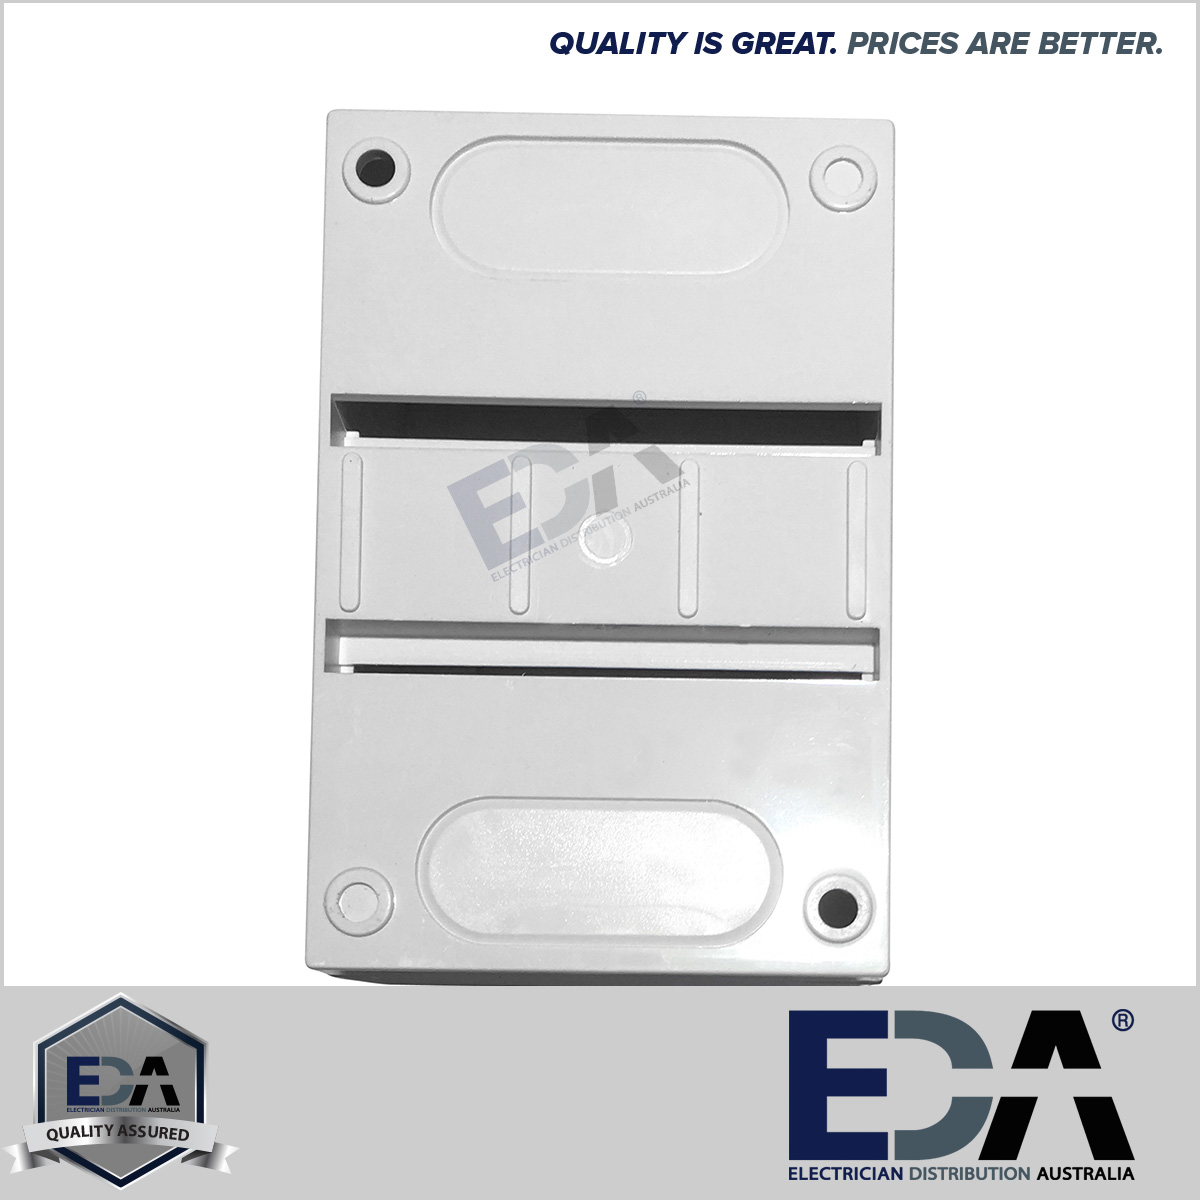 6 Pole Enclosure For Circuit Breakers Switchboard Electrical Garage Standards And Description Of Circuitbreakers Products